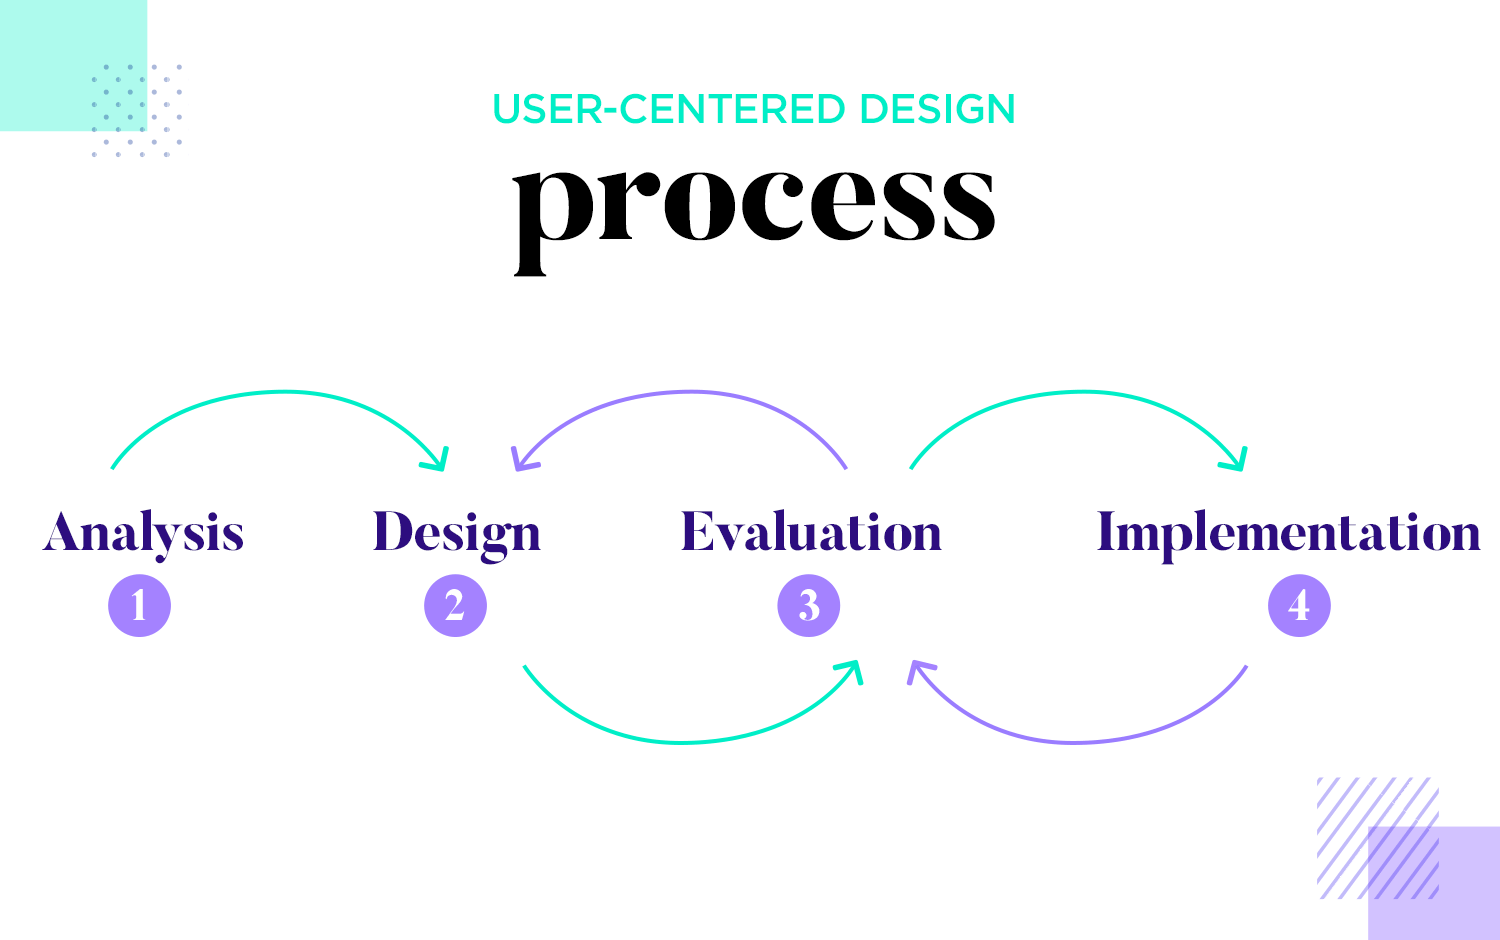 User flows - design focused on the user